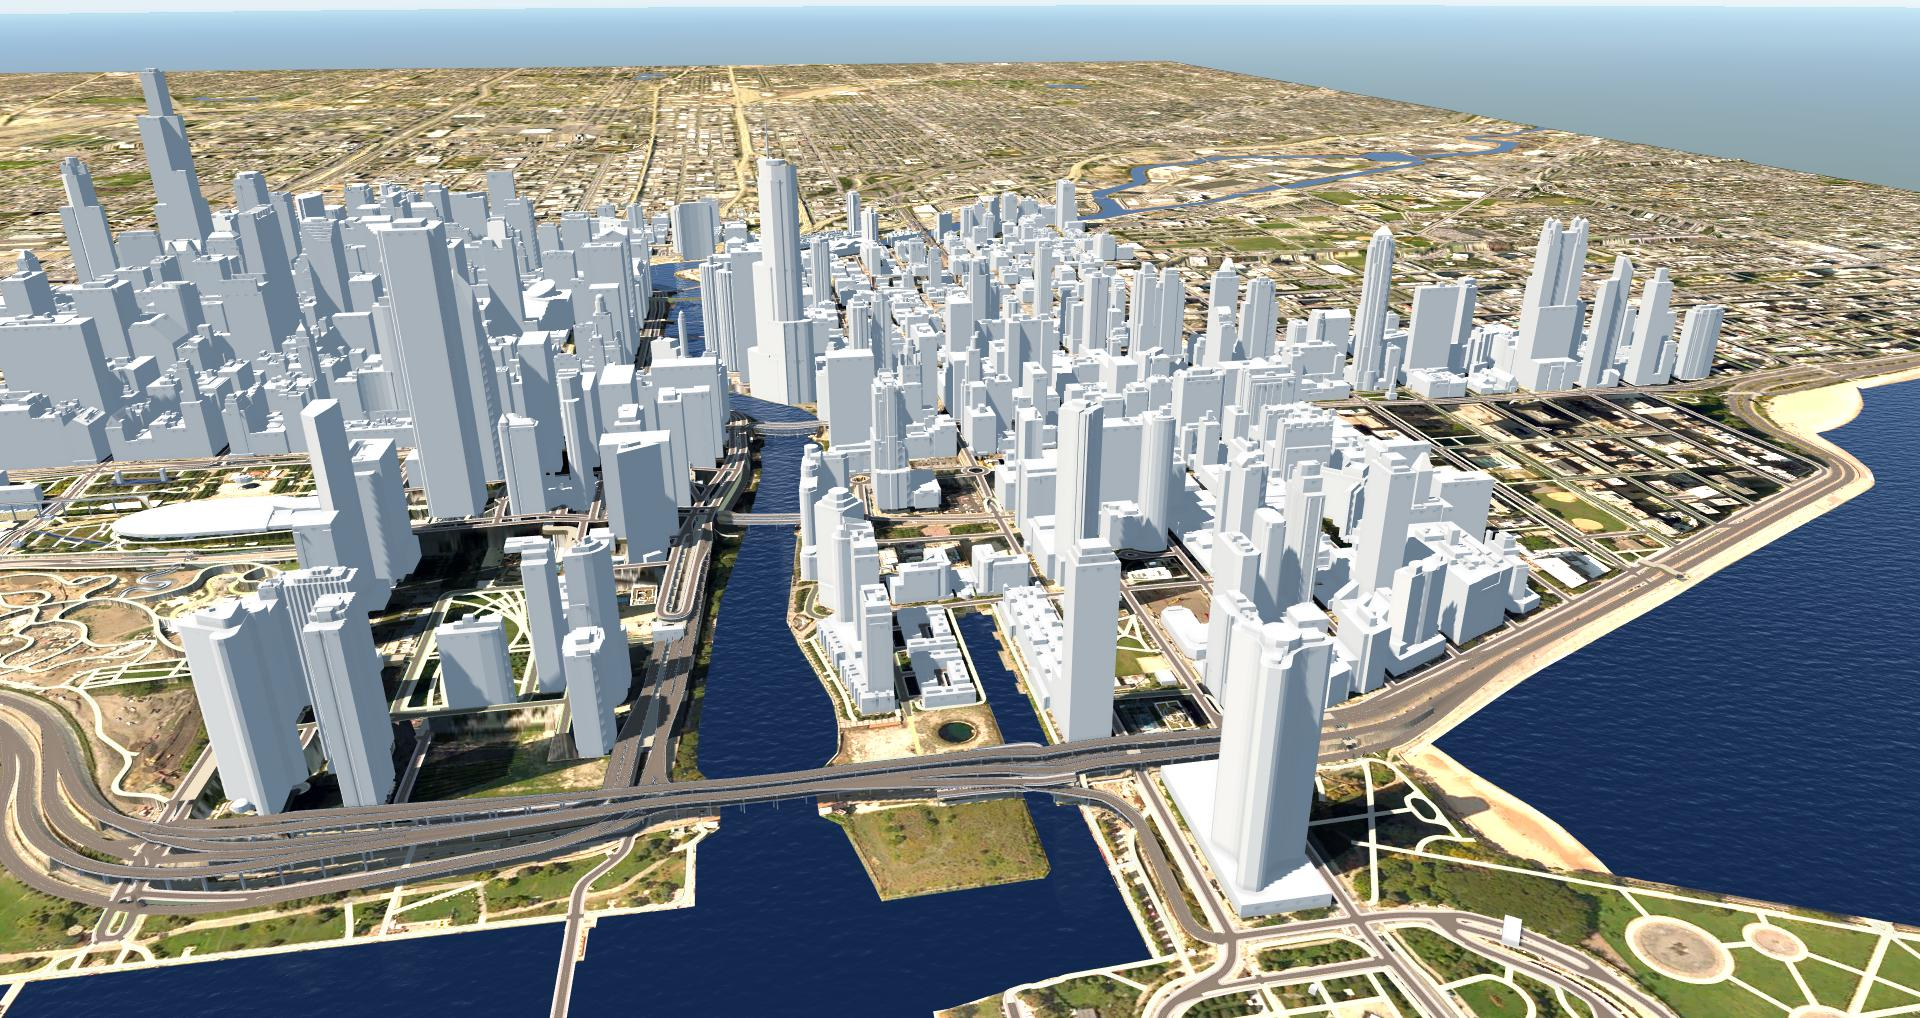 Chicago-cc3d-03-3500-3500